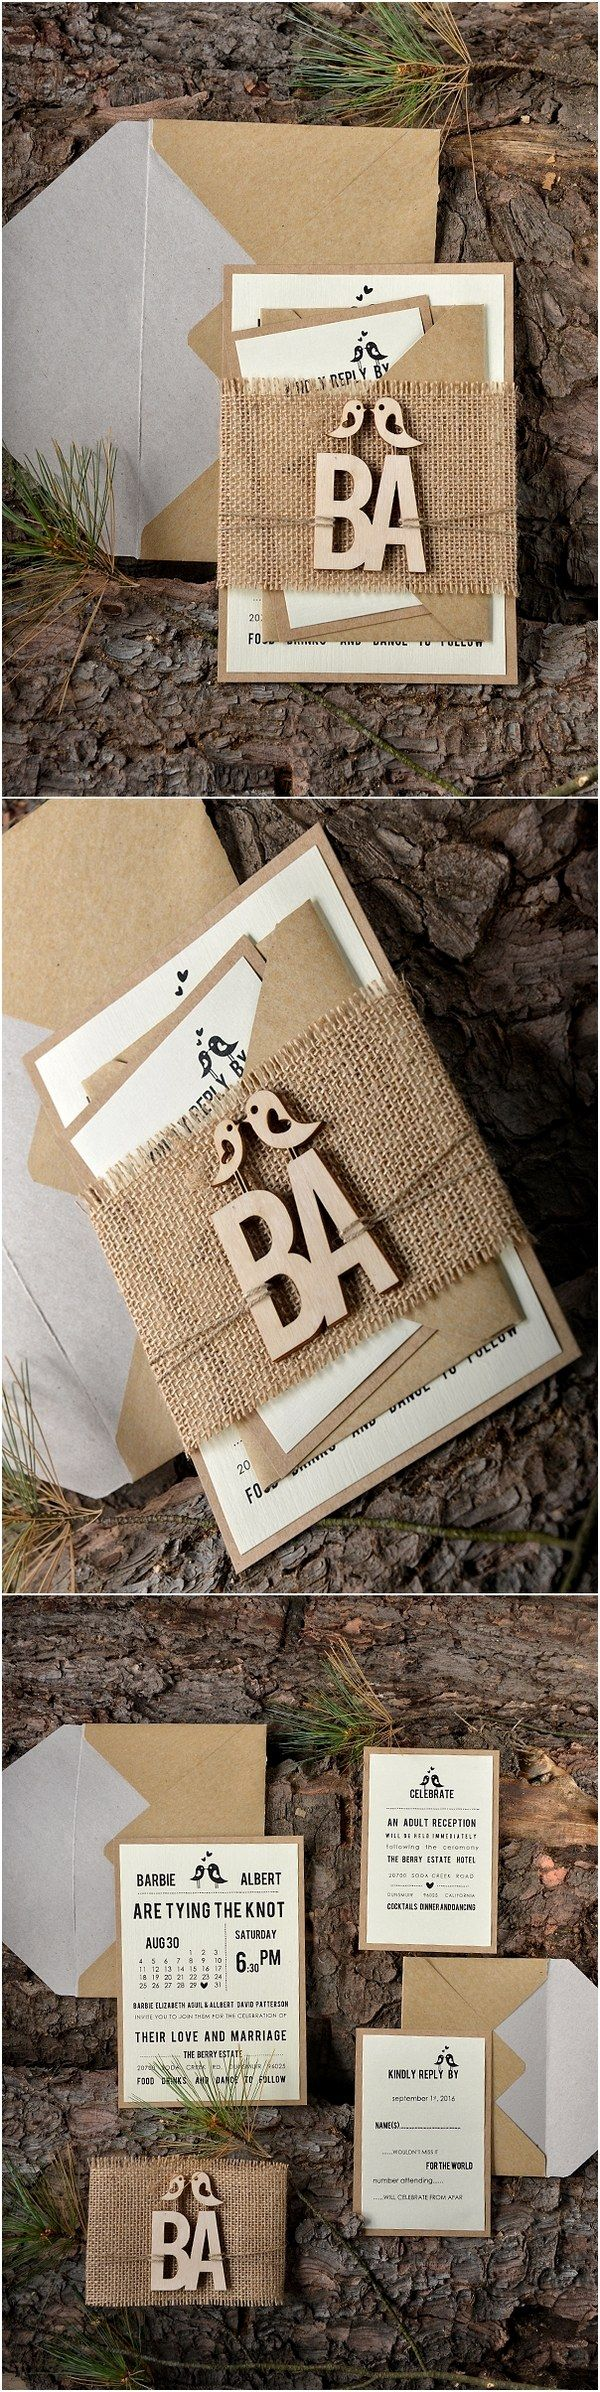 Rustic country burlap string lights lace wedding card - Rustic Country Burlap Laser Cut Love Birds Wedding Invitations 4lovepolkadots